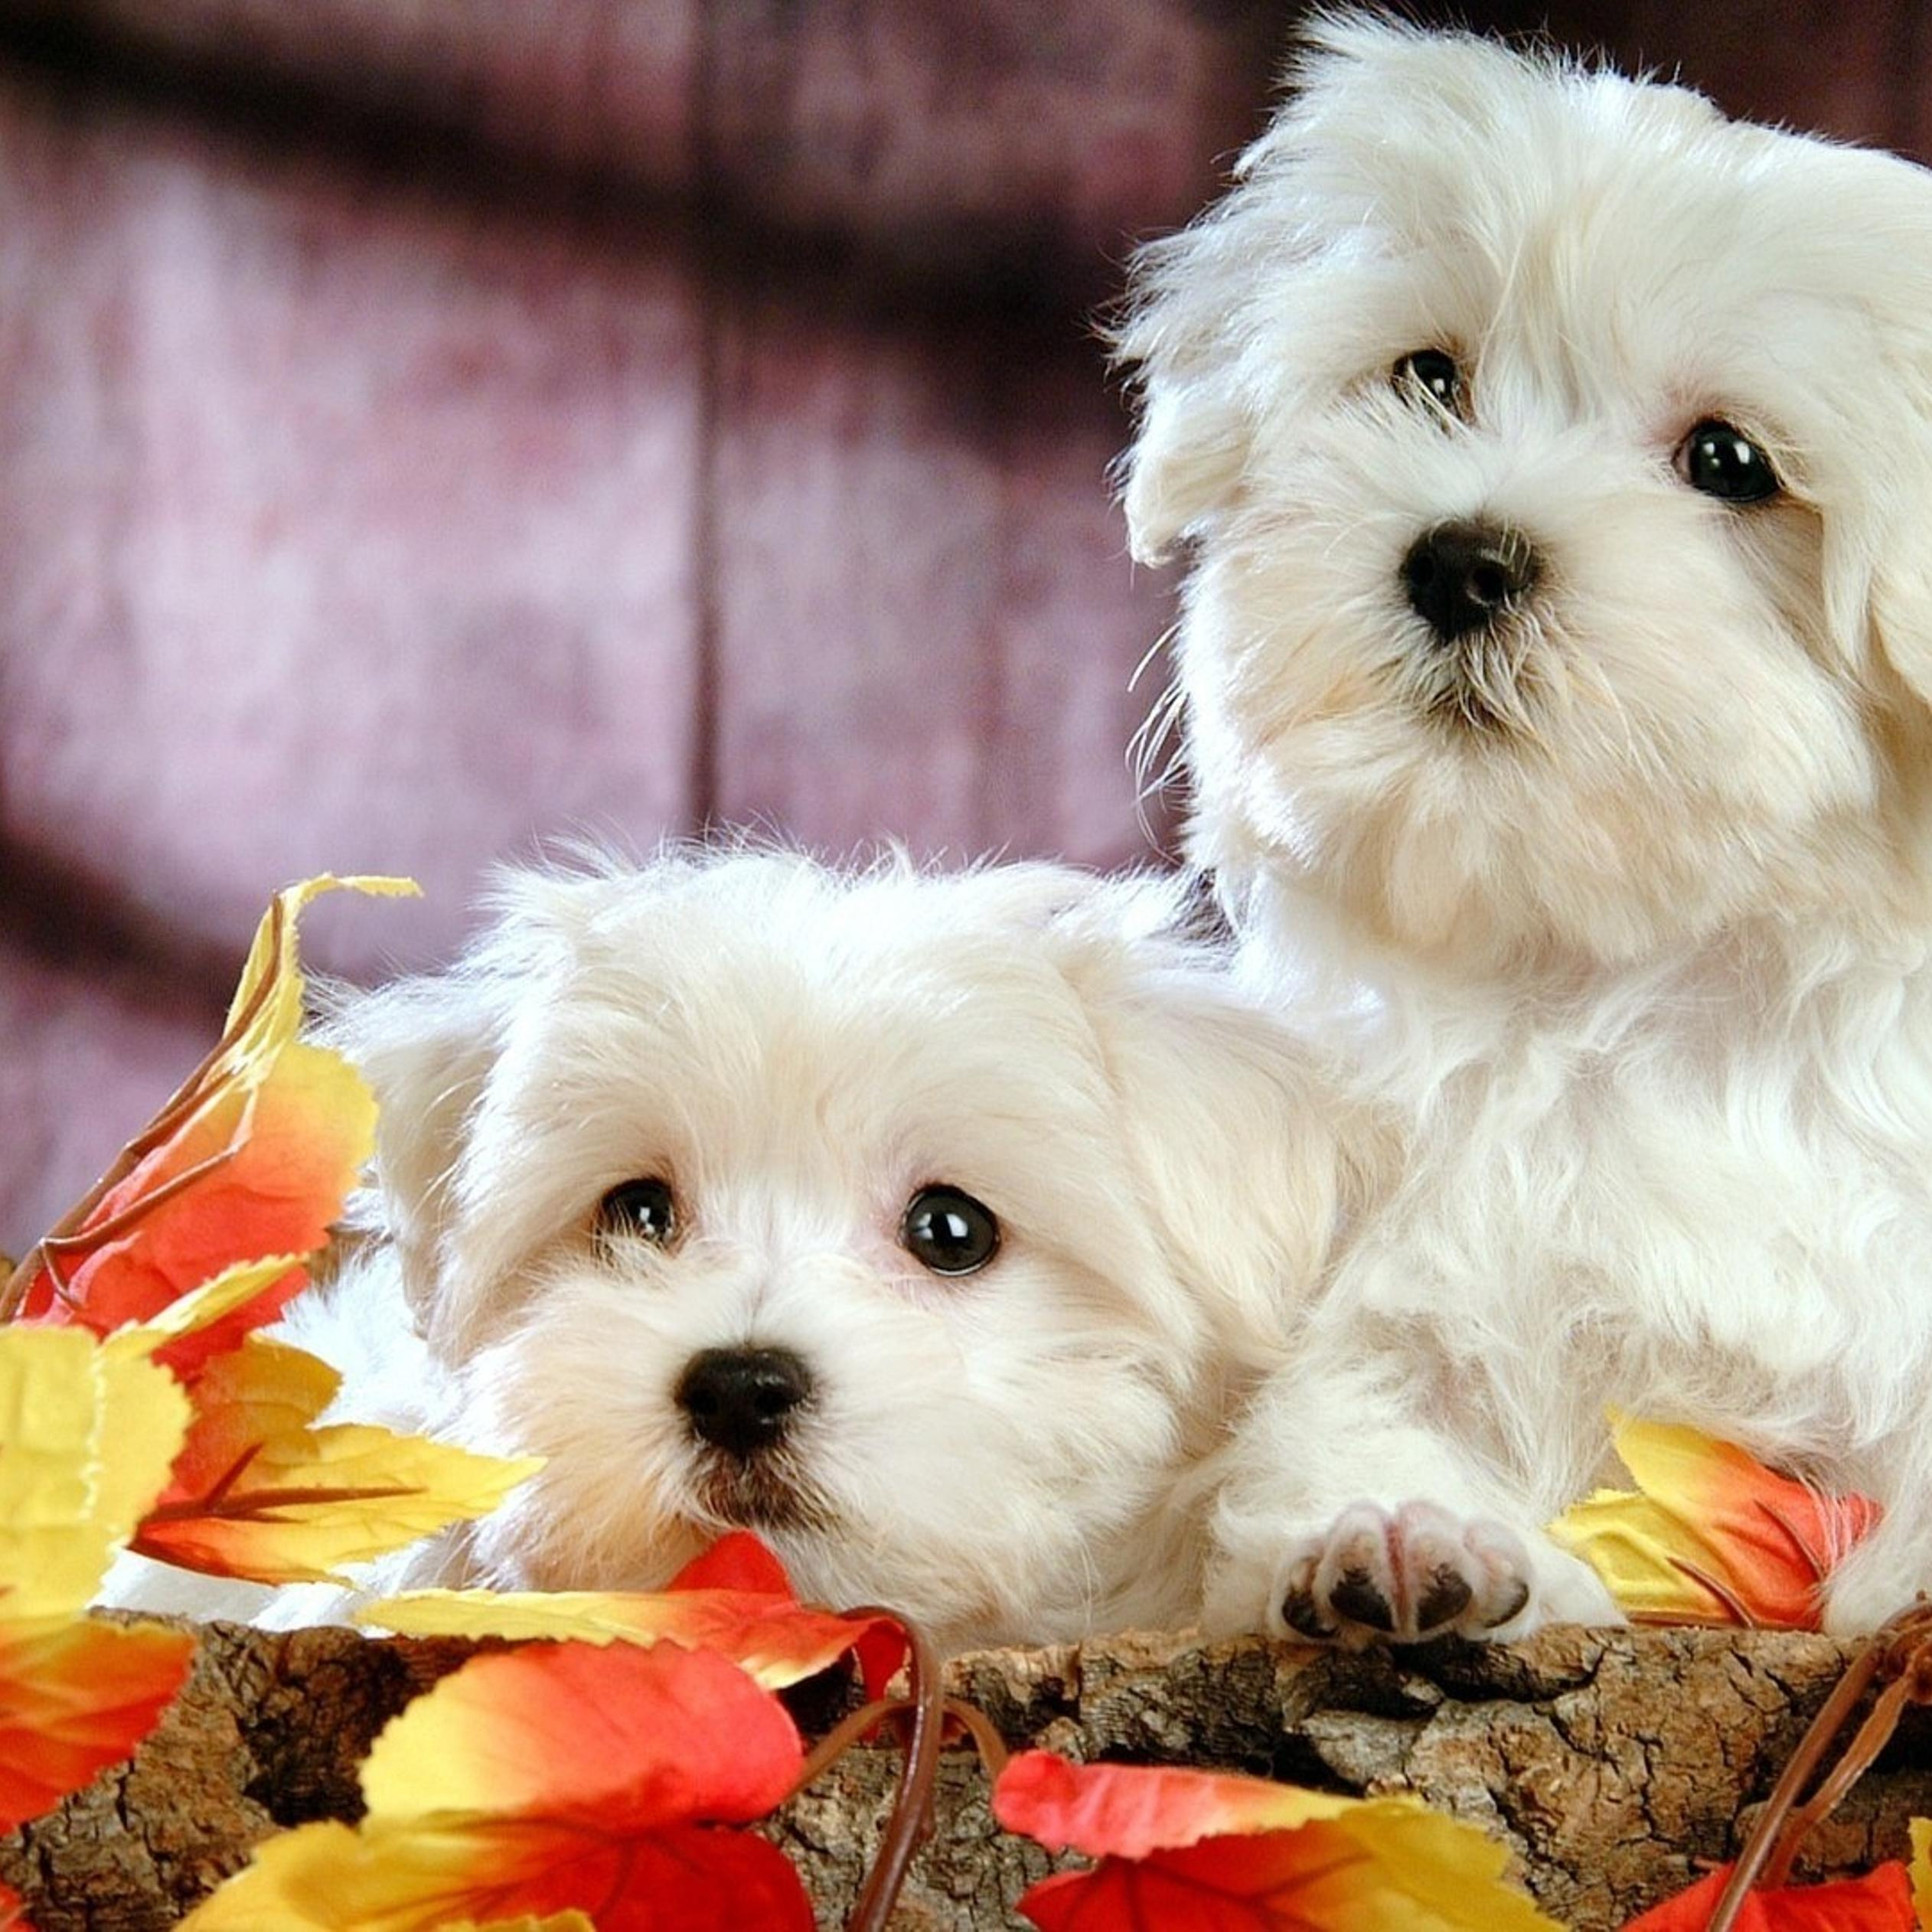 two beautiful white bichon frize - sweet dogs wallpaper download